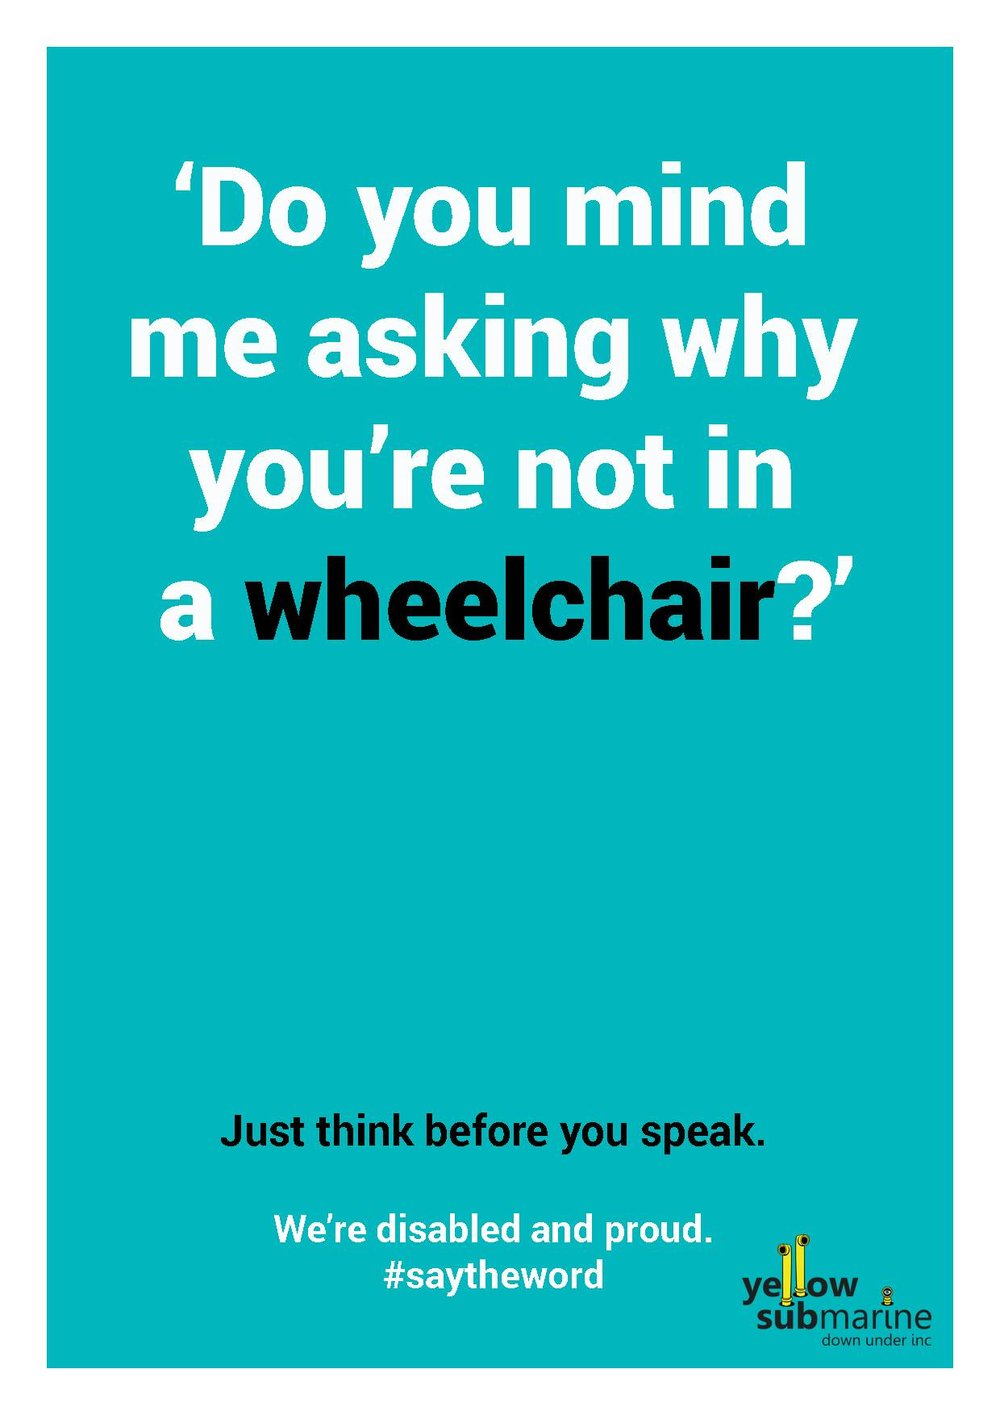 A poster with the words 'Do you mind me asking why you're not in a wheelchair' on a teal background